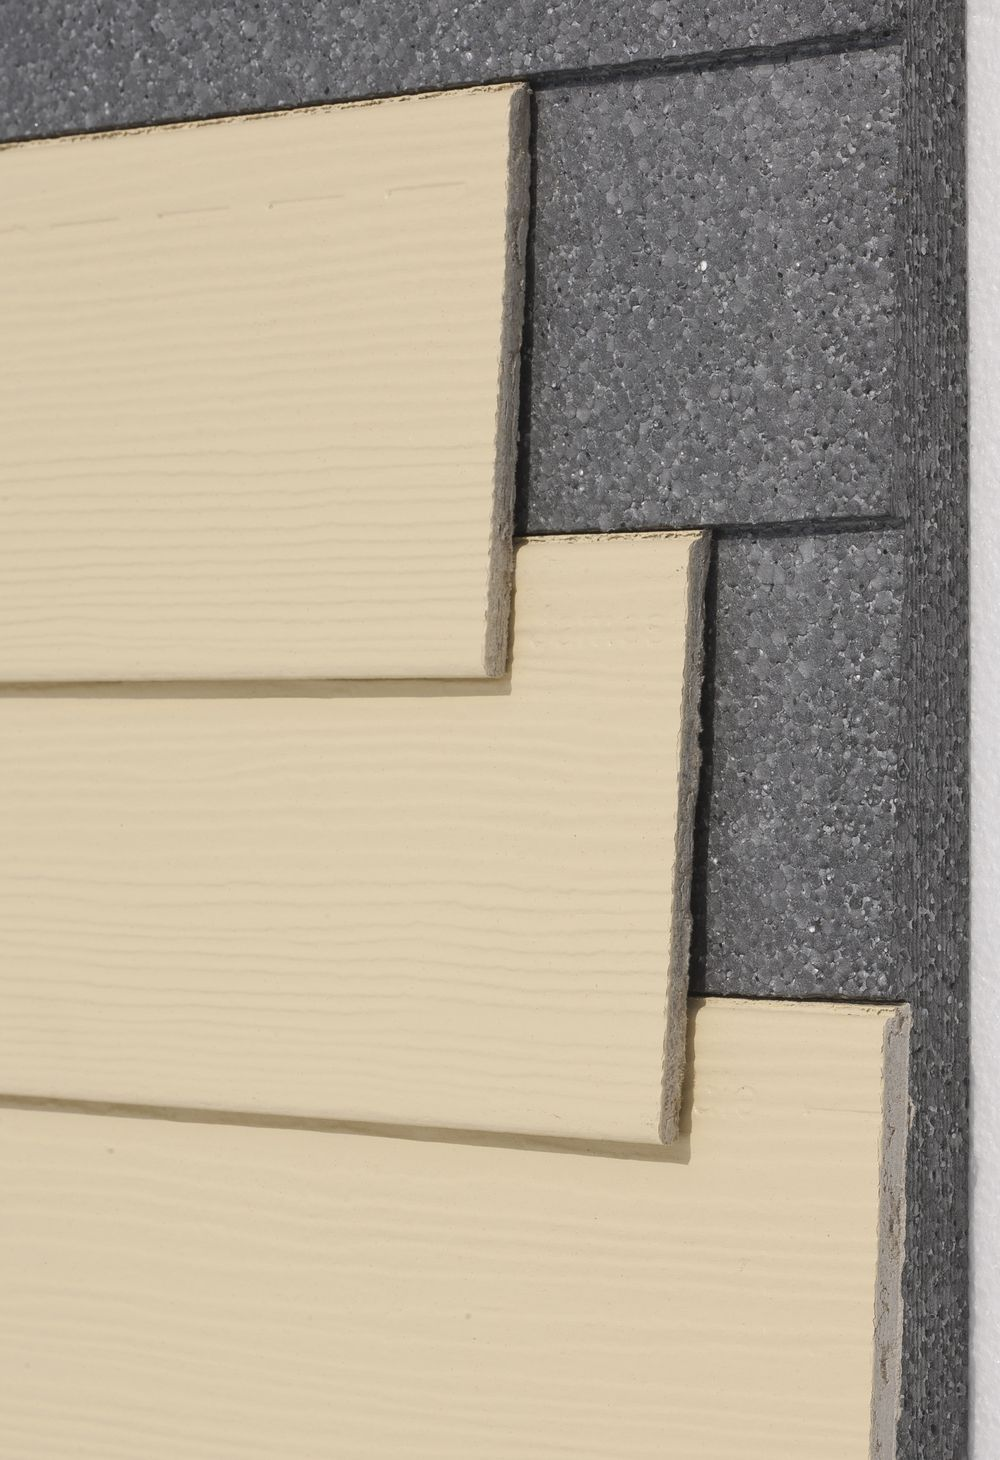 New Insulation For James Hardie Siding Hardie Siding James Hardie Siding Insulated Vinyl Siding